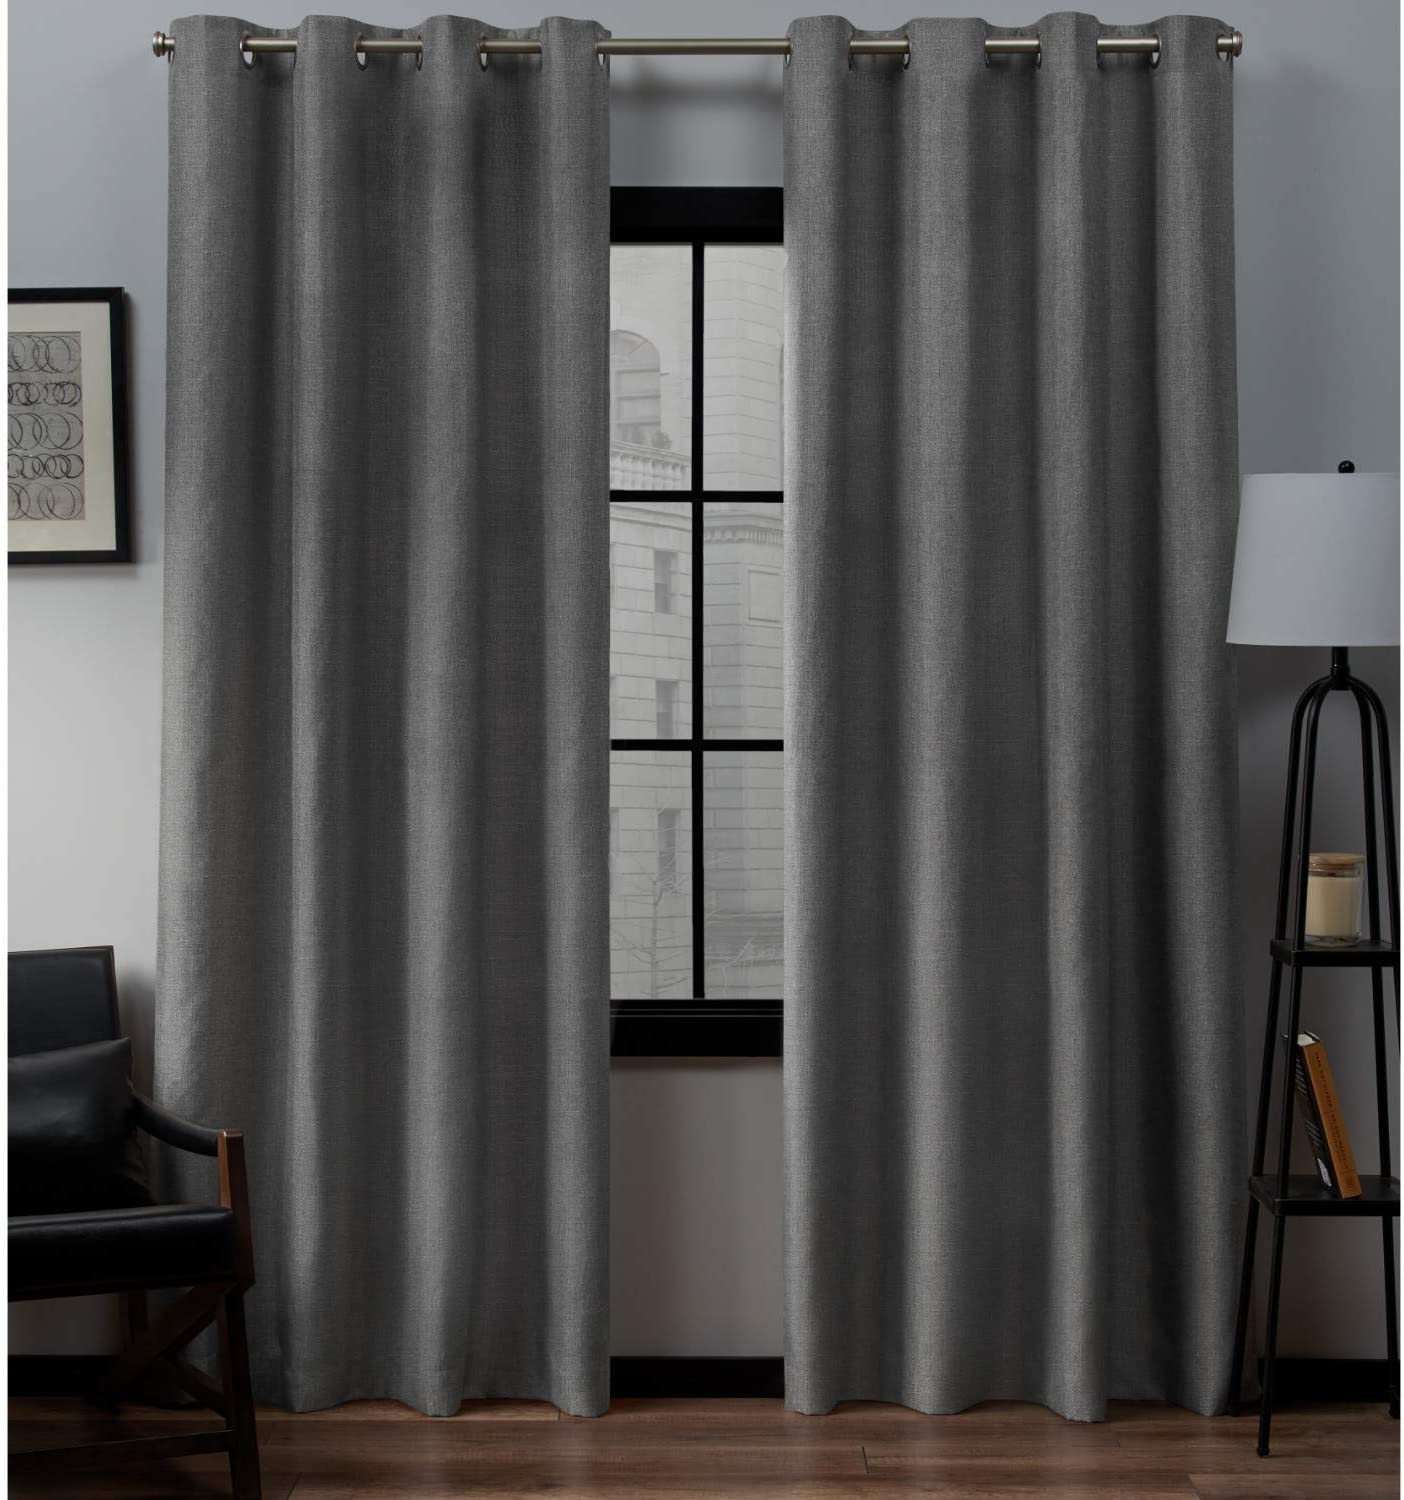 Exclusive Home Curtains Loha Linen Grommet Top Curtain Panel Pair, 54x108, Black Pearl,EH8092-01 2-108G